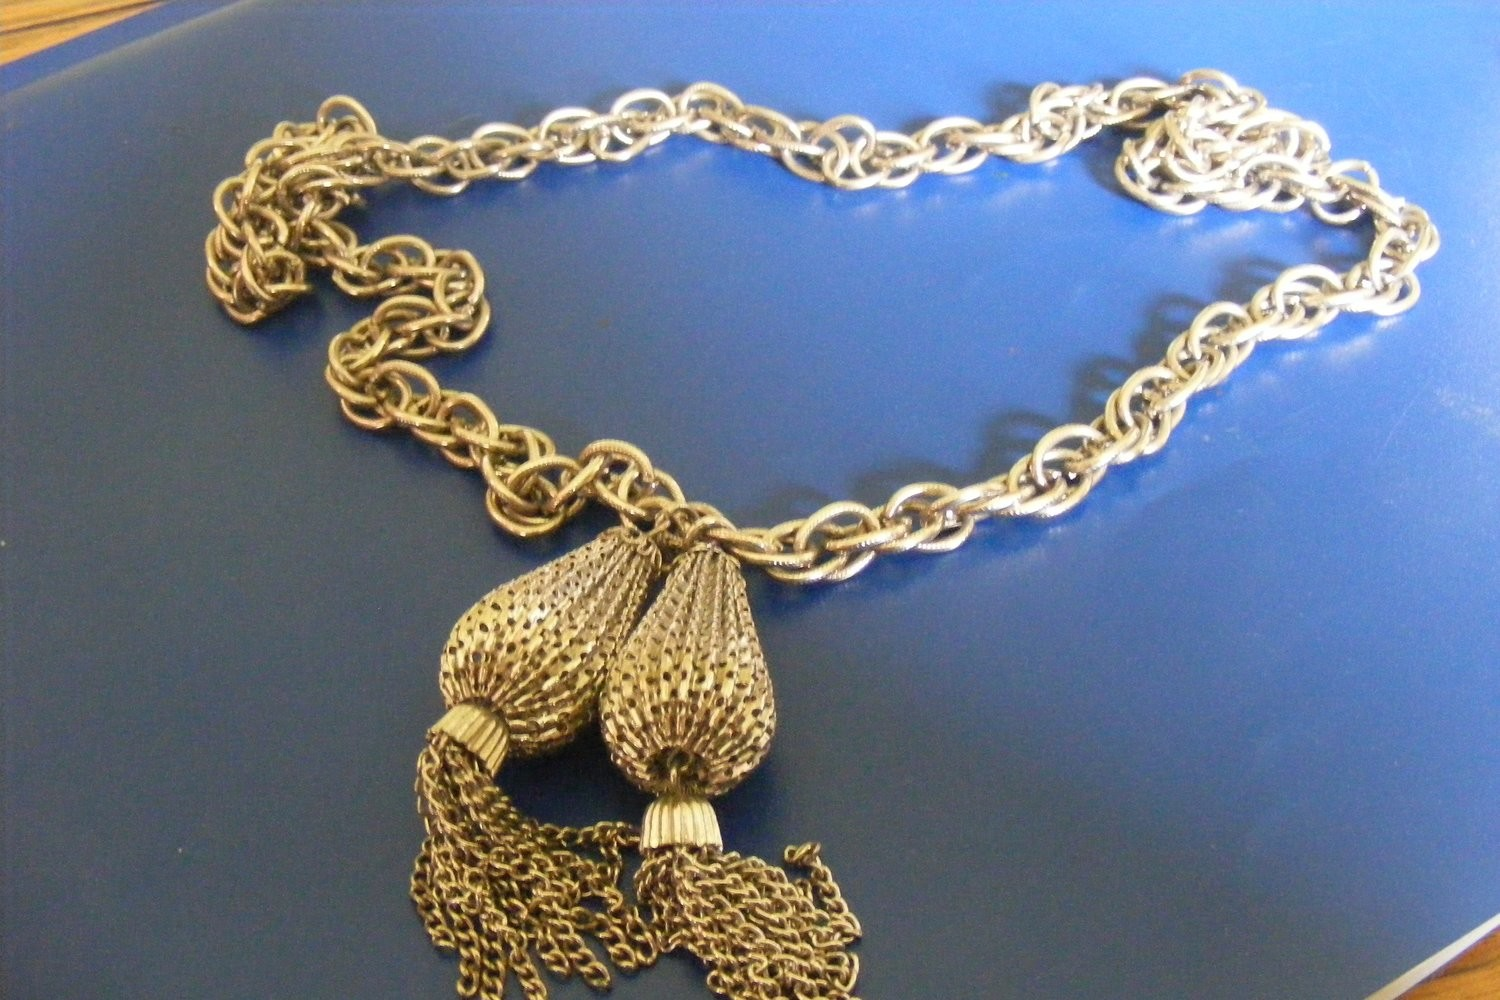 Anointed necklace to rebuke banish block all demonic & negative spirits from within thy home